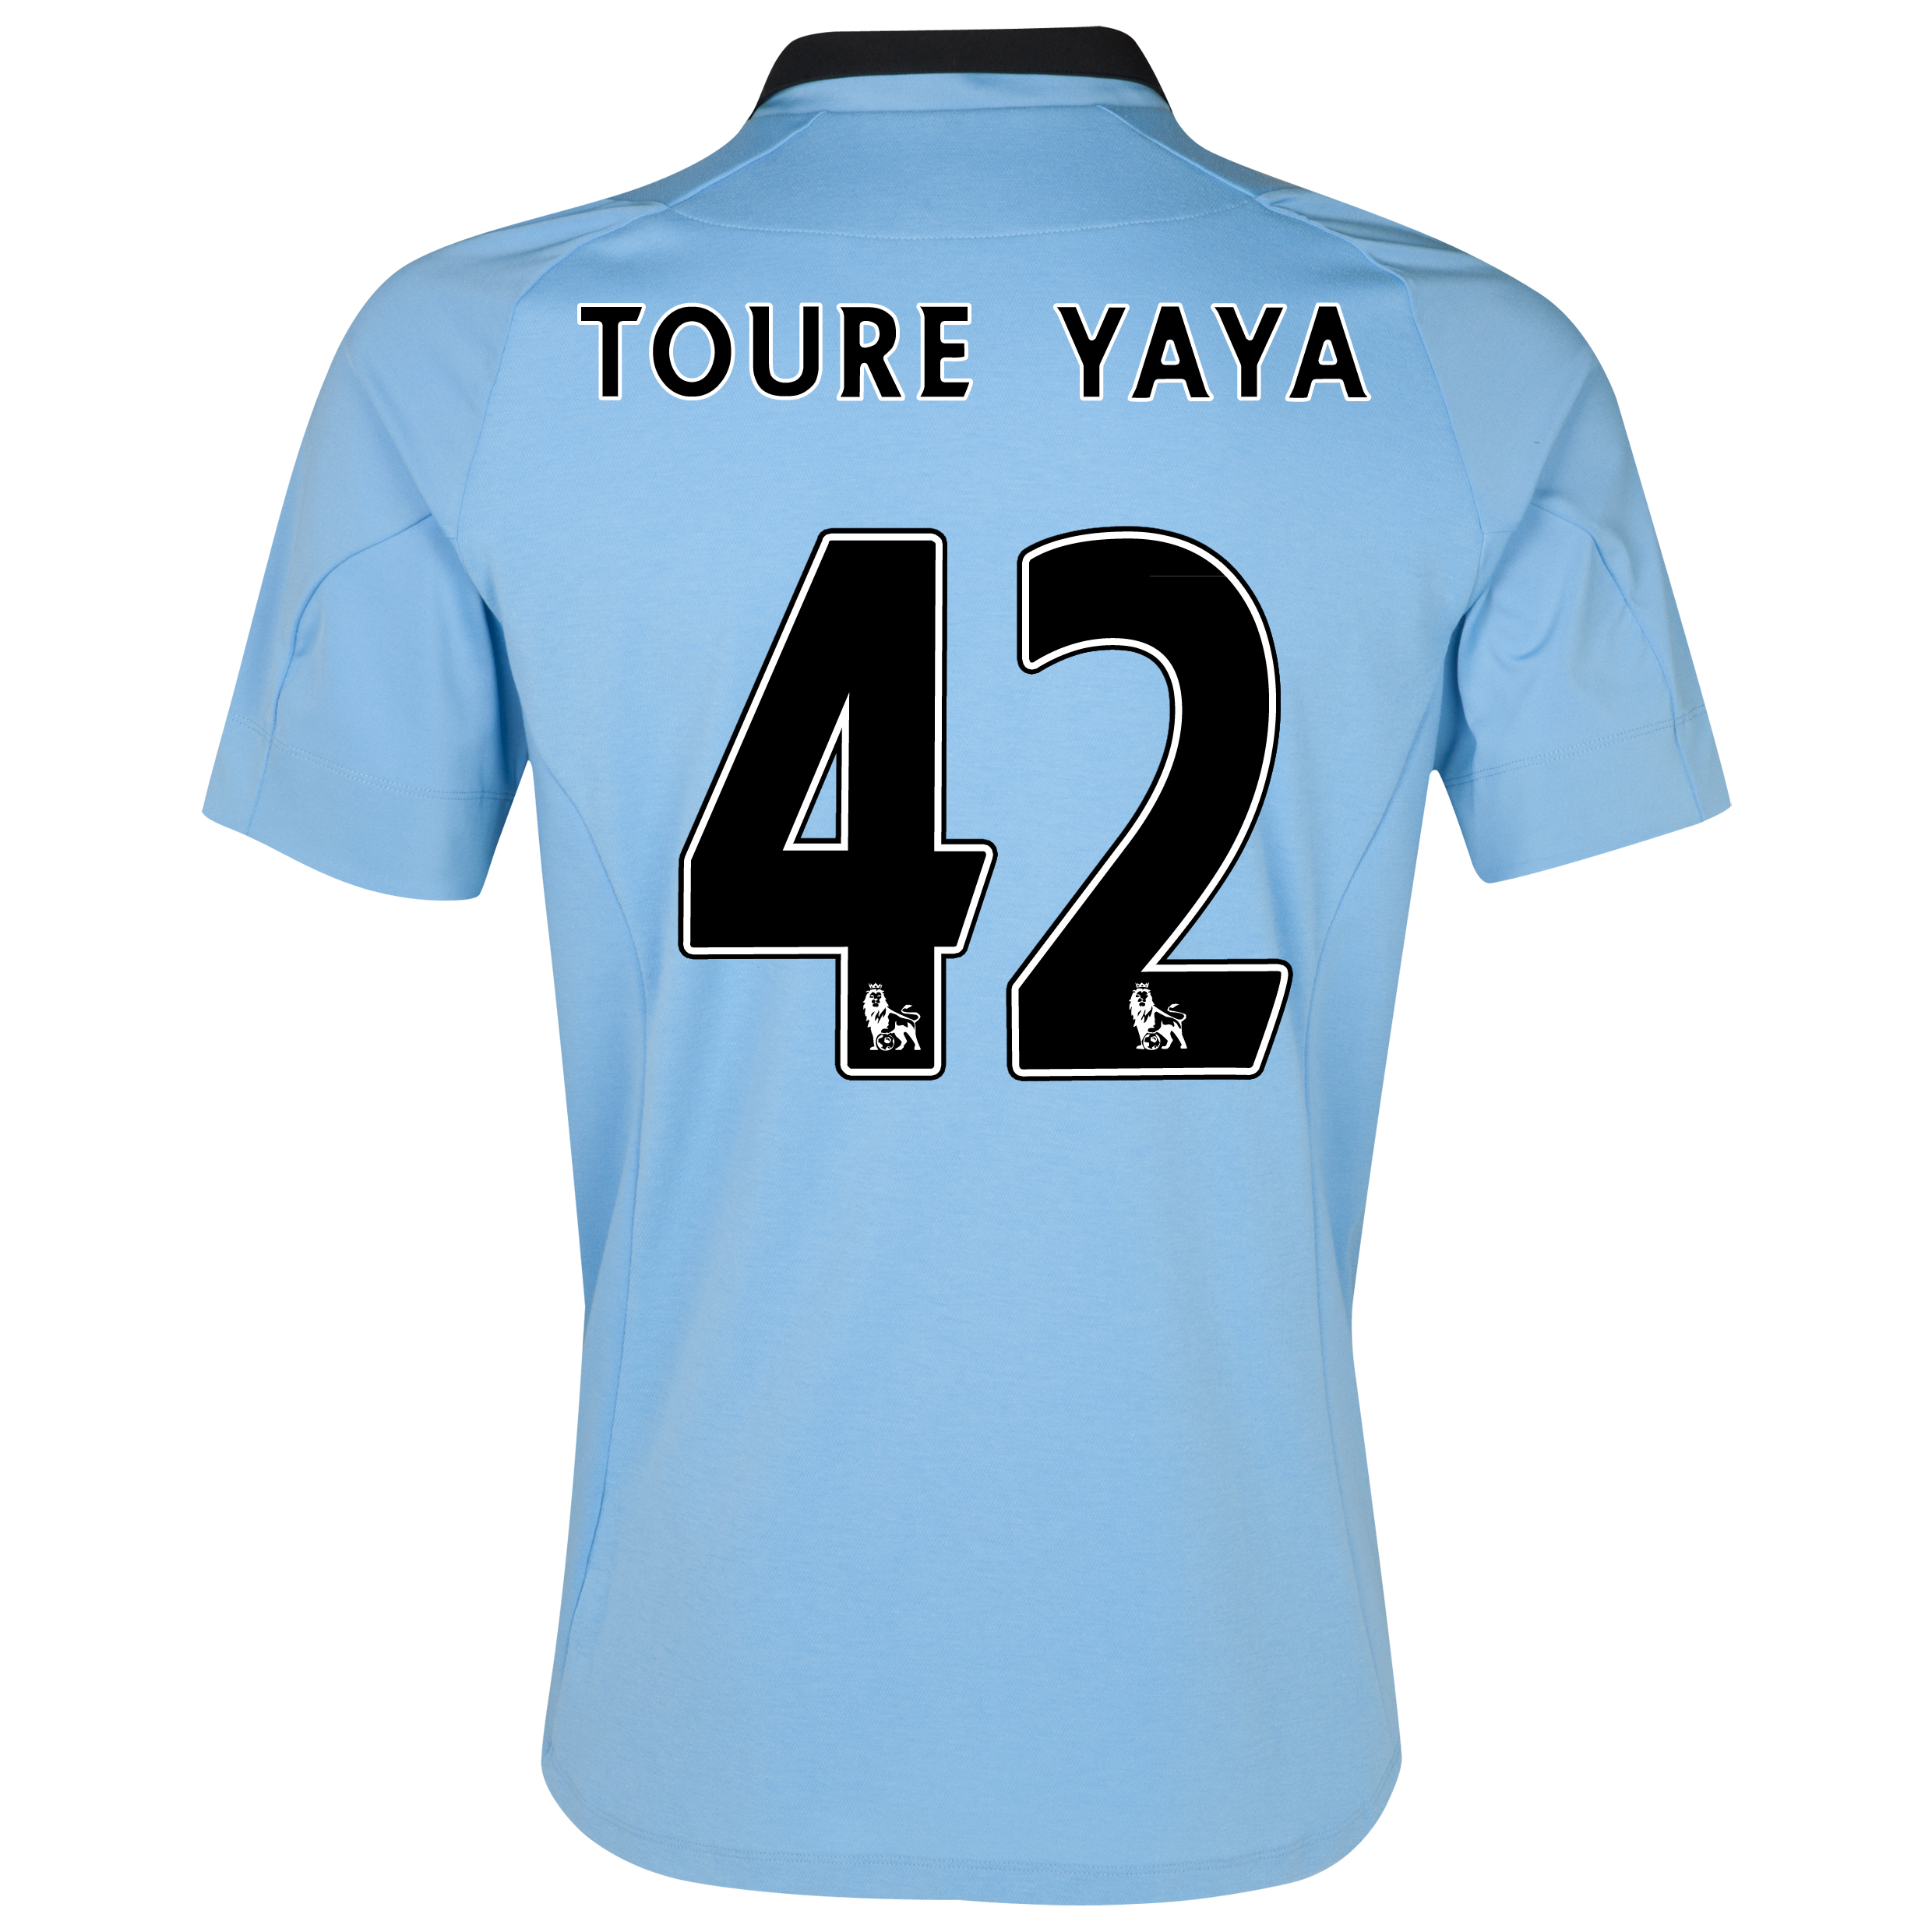 Manchester City Home Shirt 2012/13 with Toure Yaya 42 printing